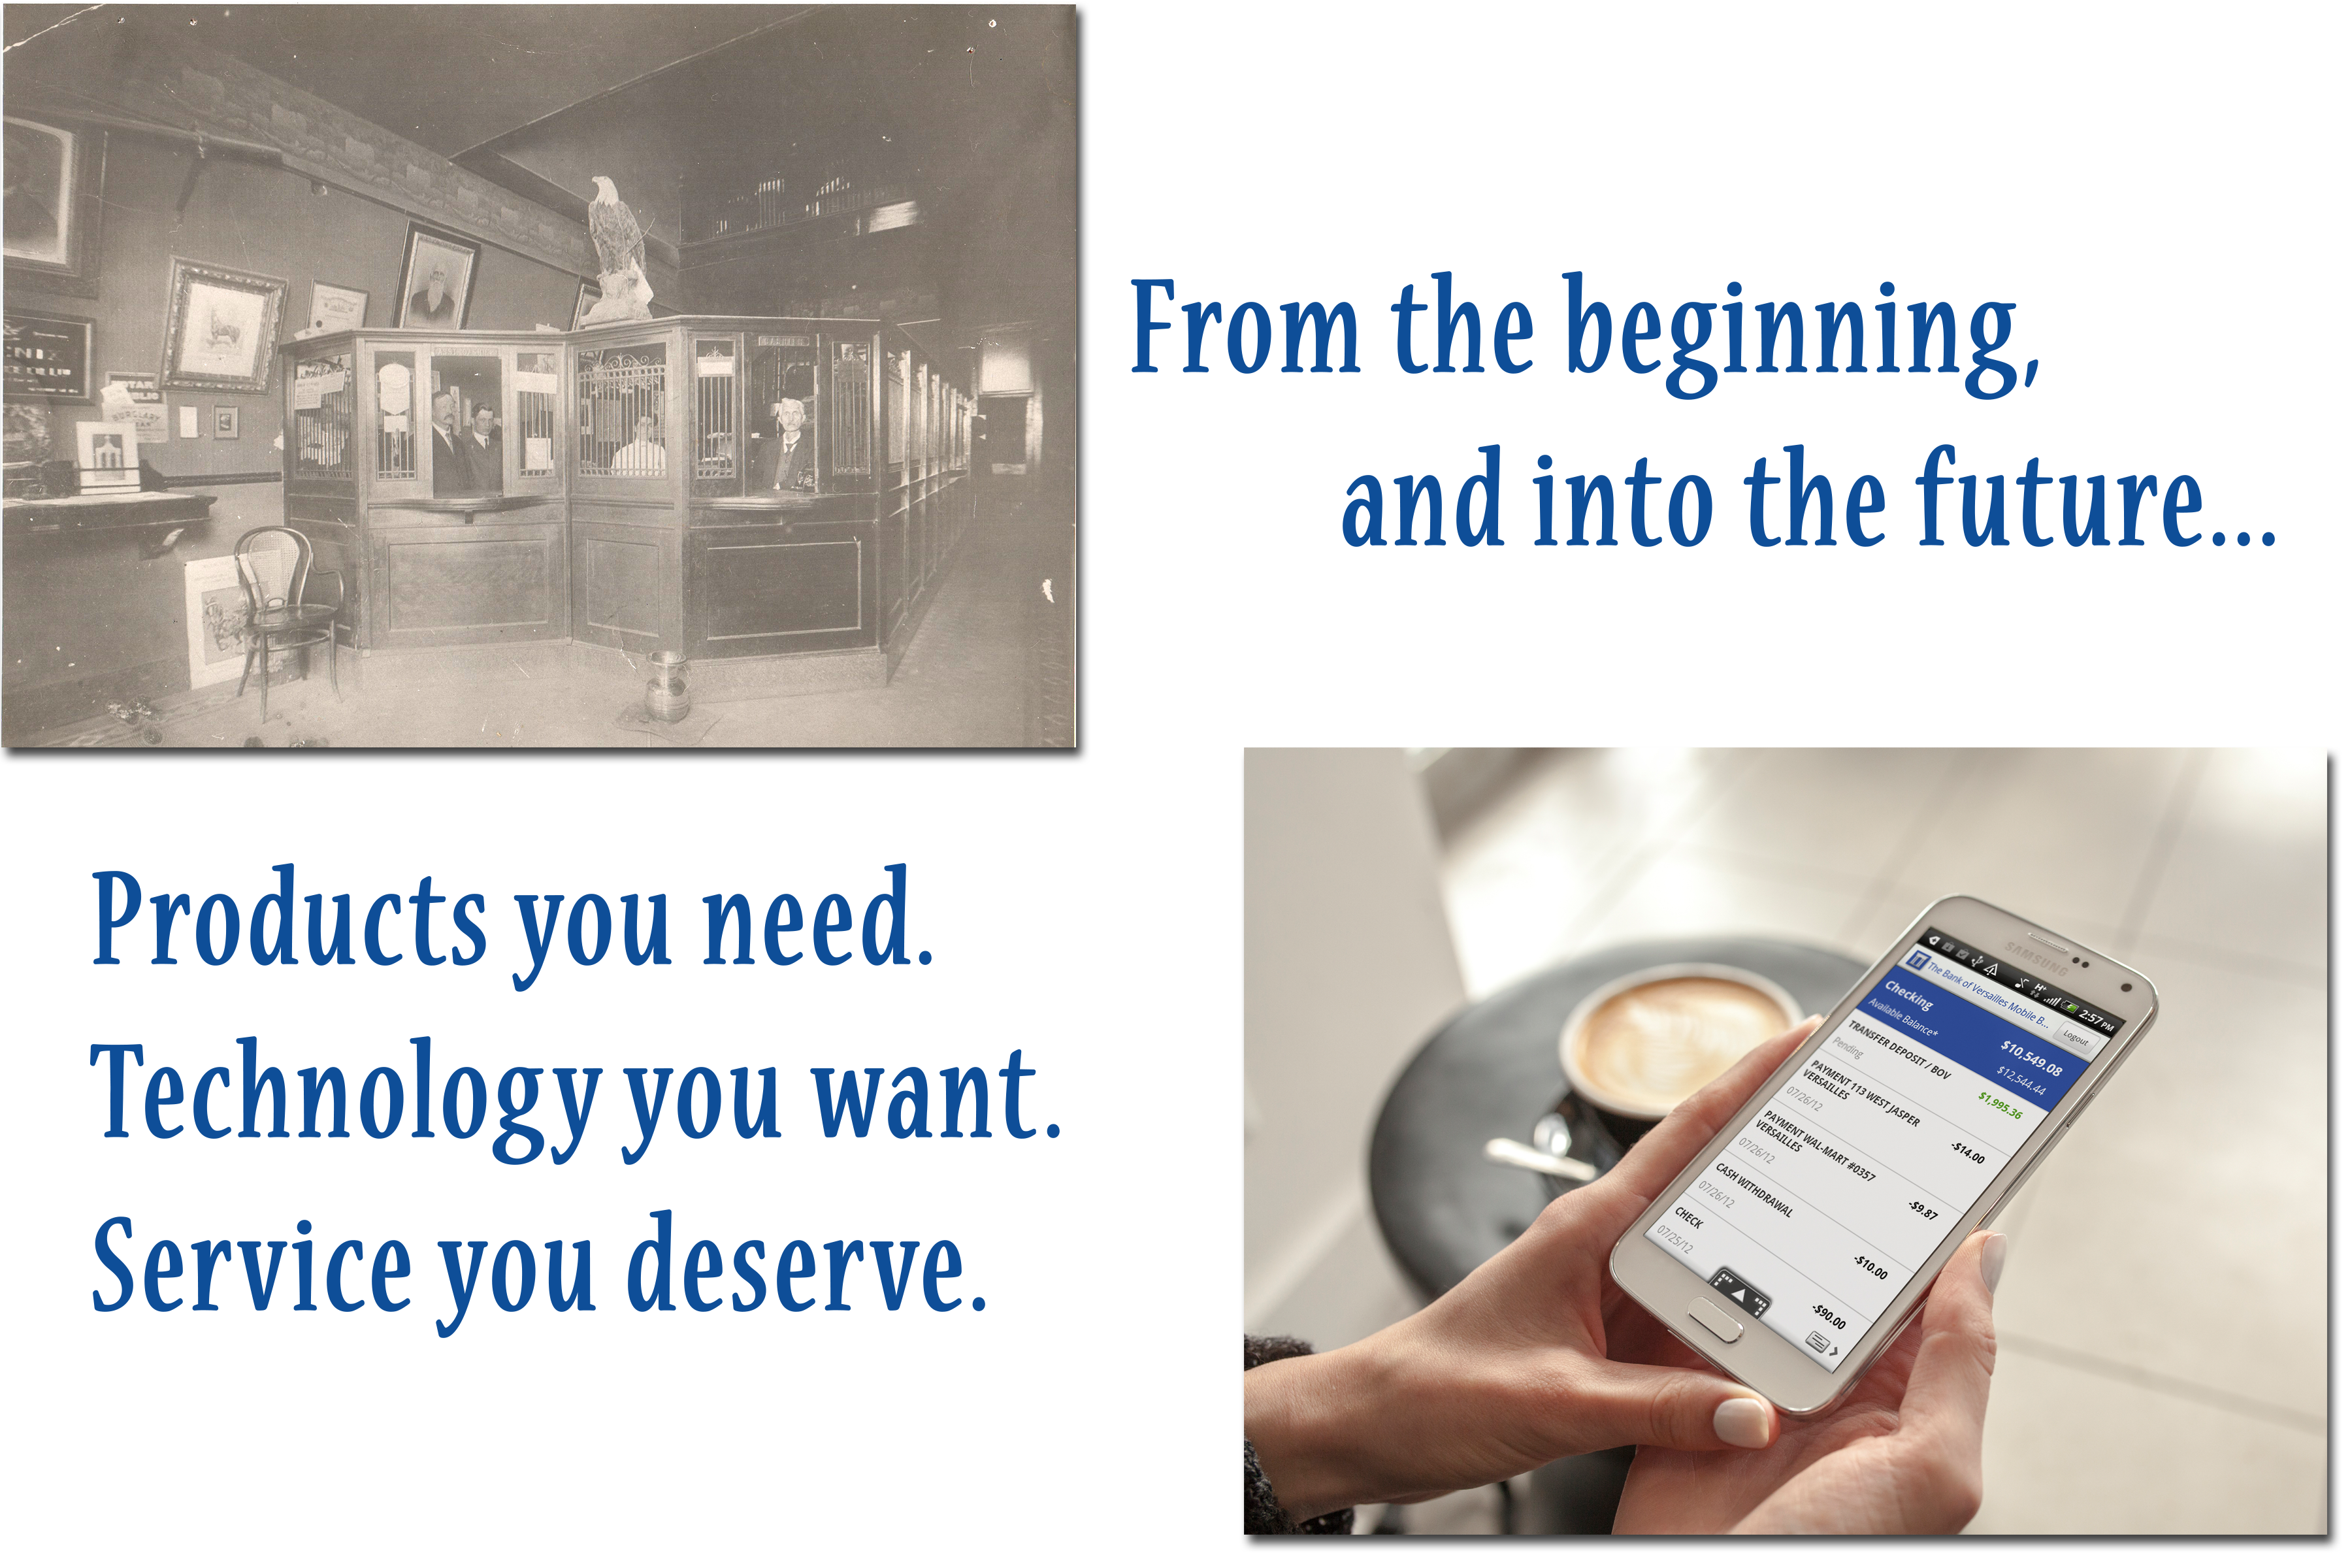 Image of the bank lobby in early 1900's and an image of our newest mobile banking app. Text says: From the beginning and into the future... Products you need. Technology you want. Service you deserve.